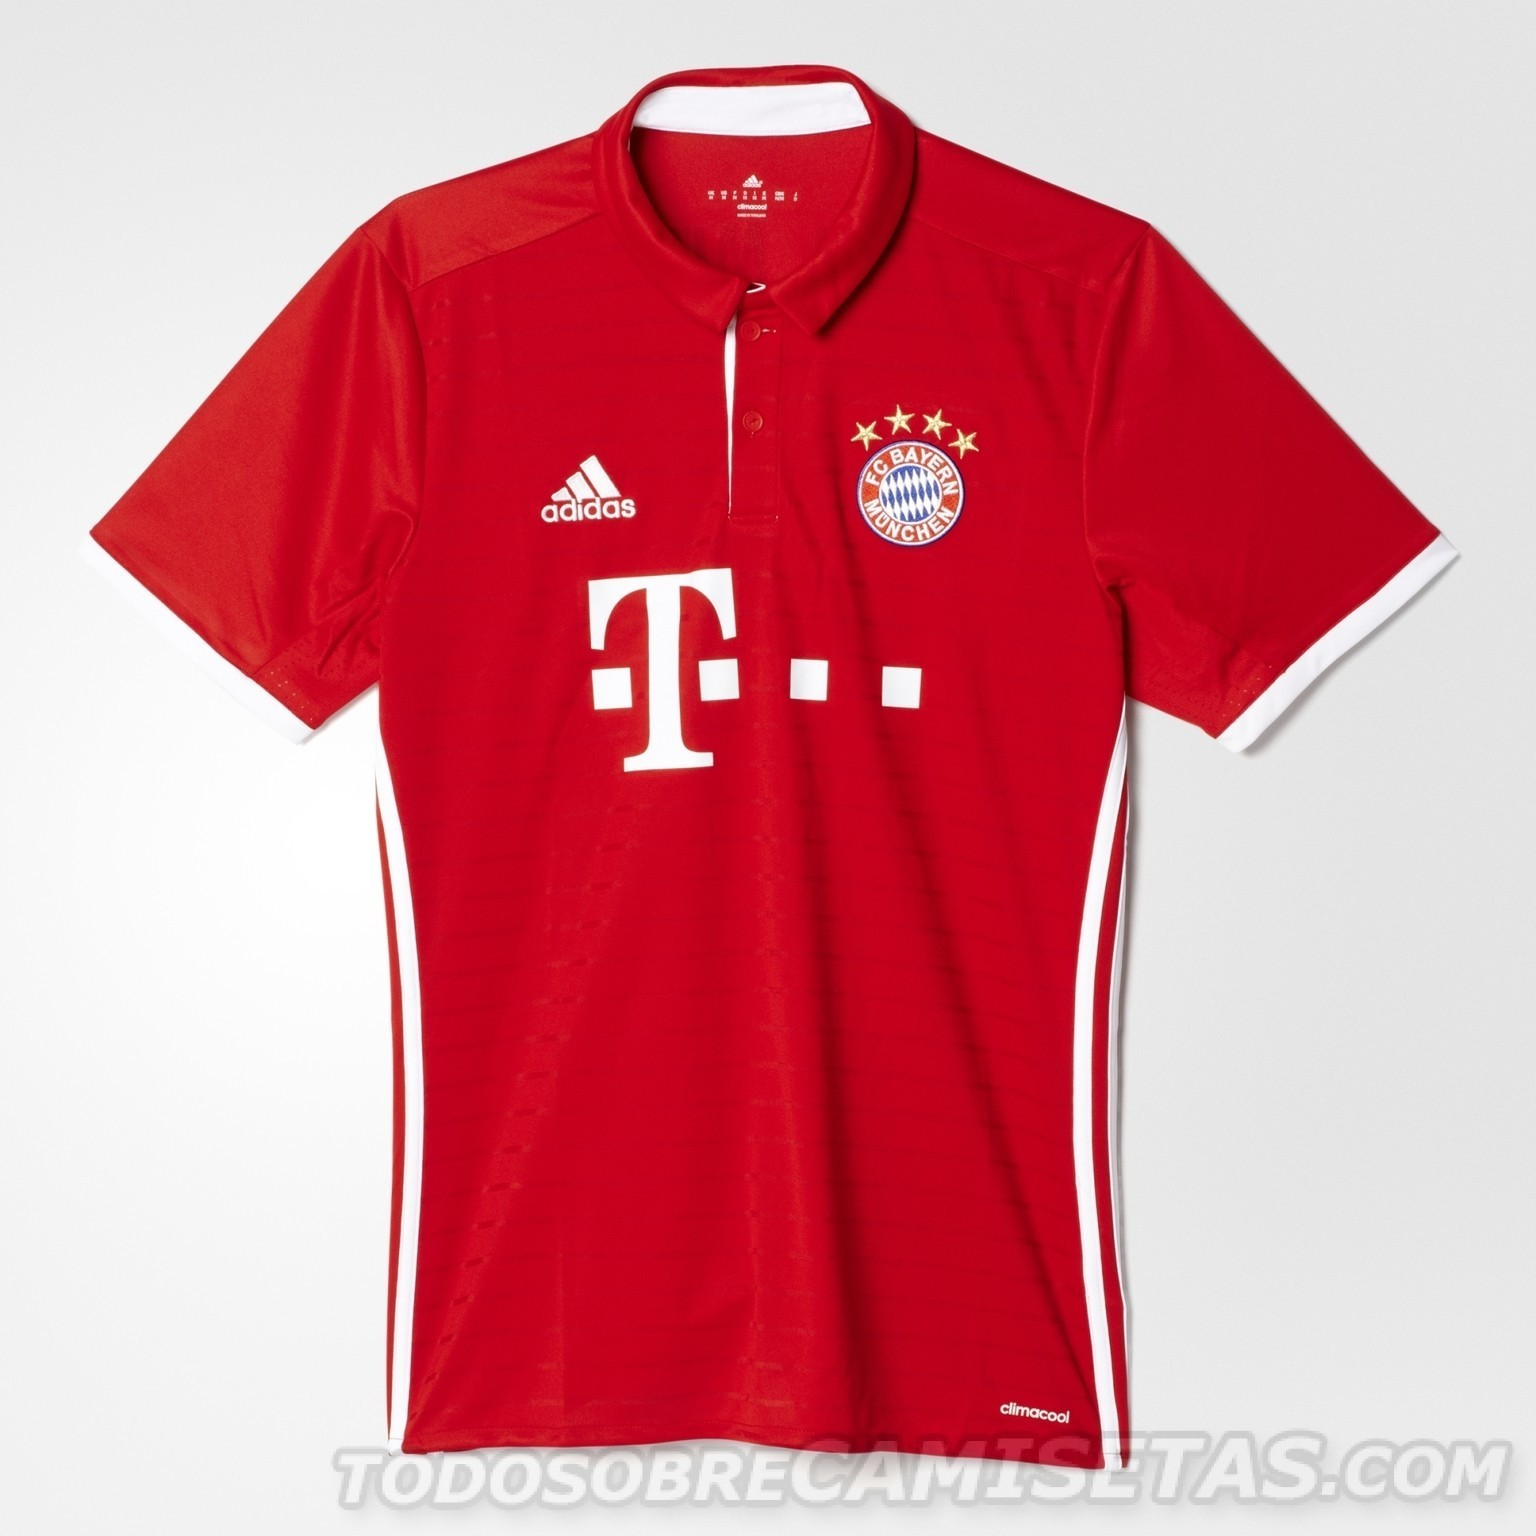 Bayern-Munich-2016-17-adidas-new-home-kit-4.jpg